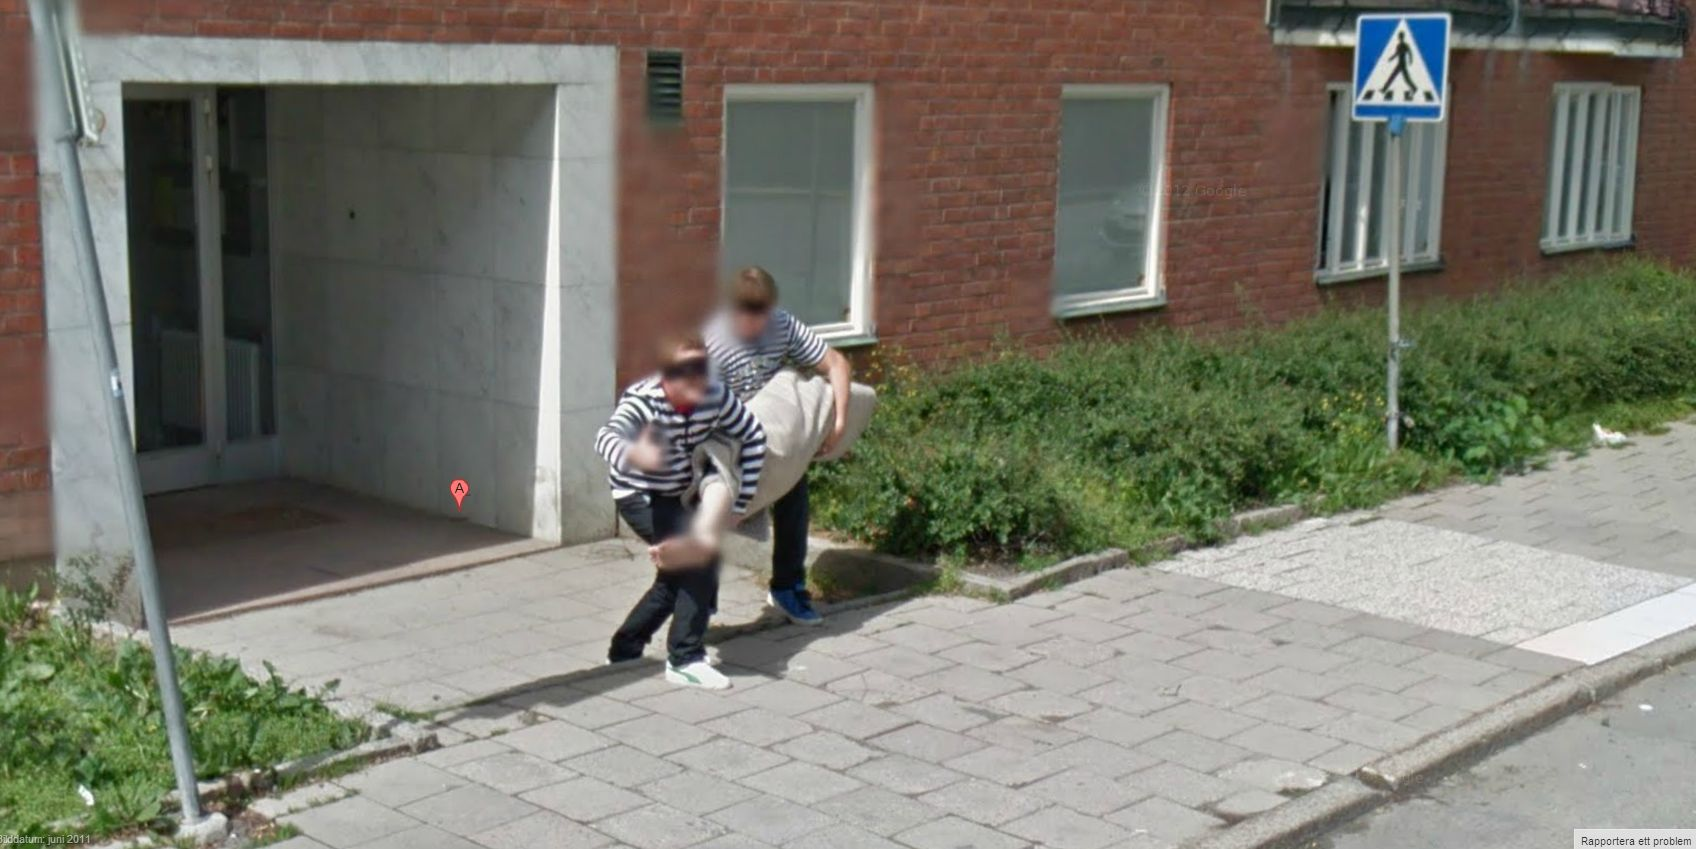 Suious Jailbirds Carrying Off a Dead Body | Google Street View ... on